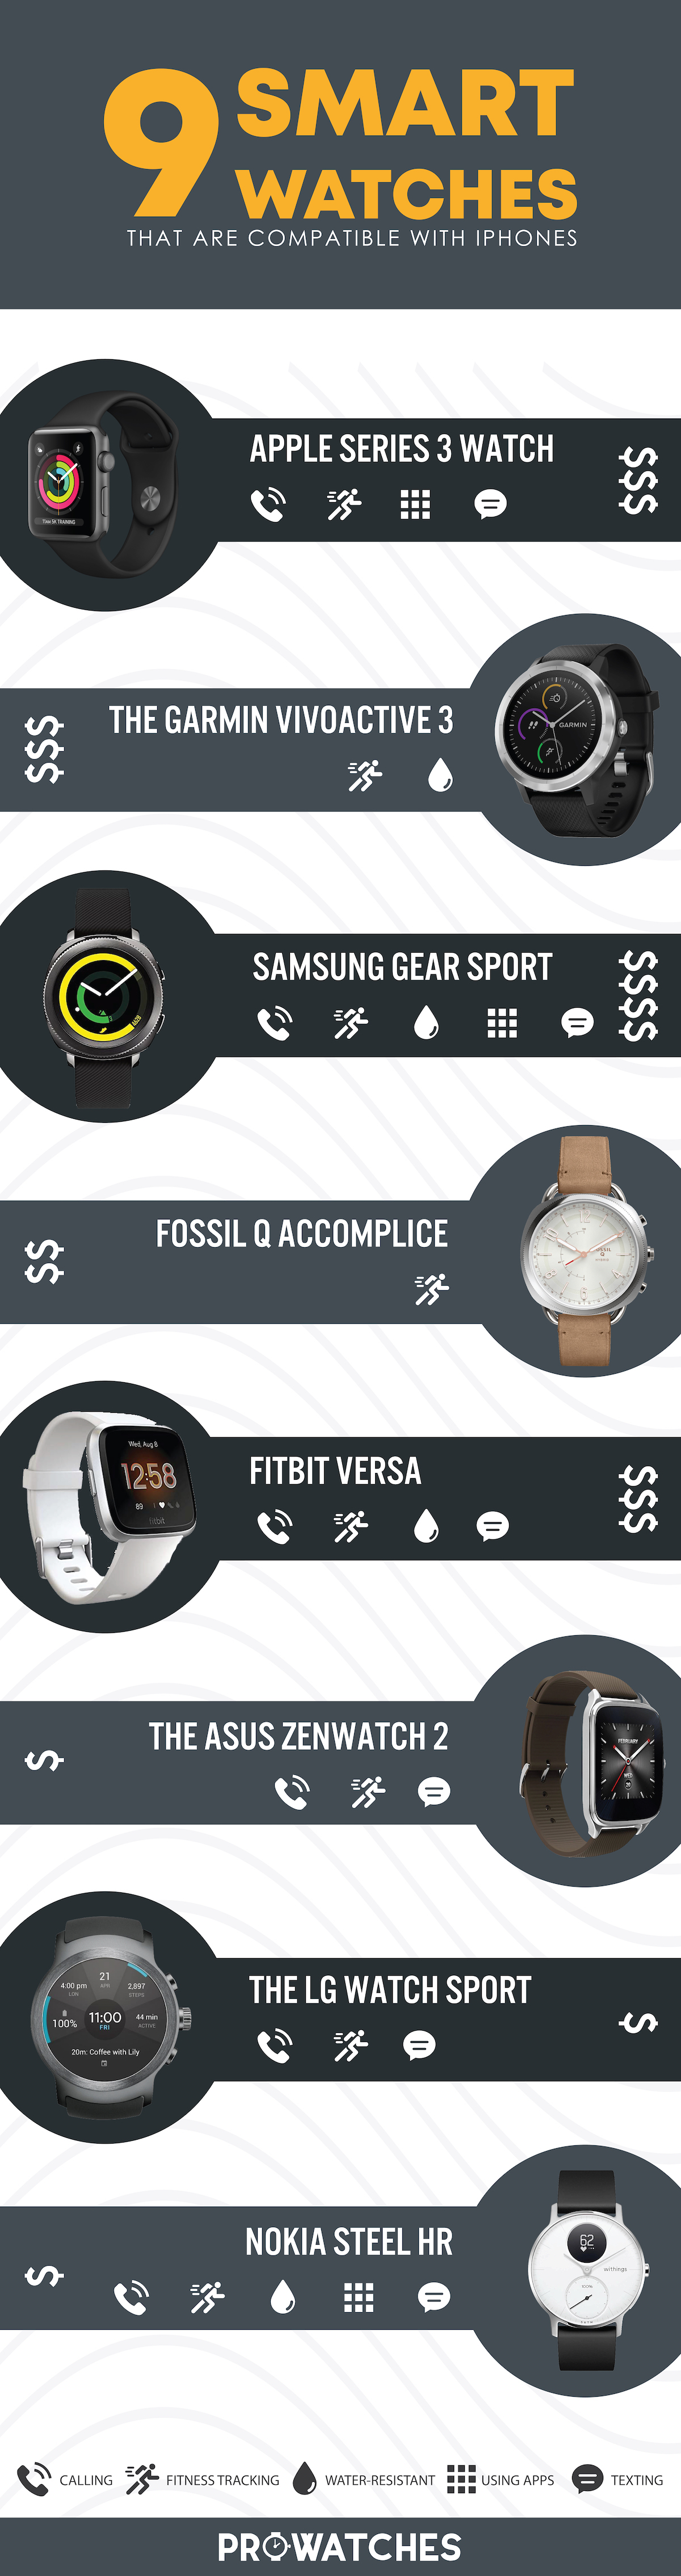 Smartwatch, Iphone, Smartwatch For Iphone